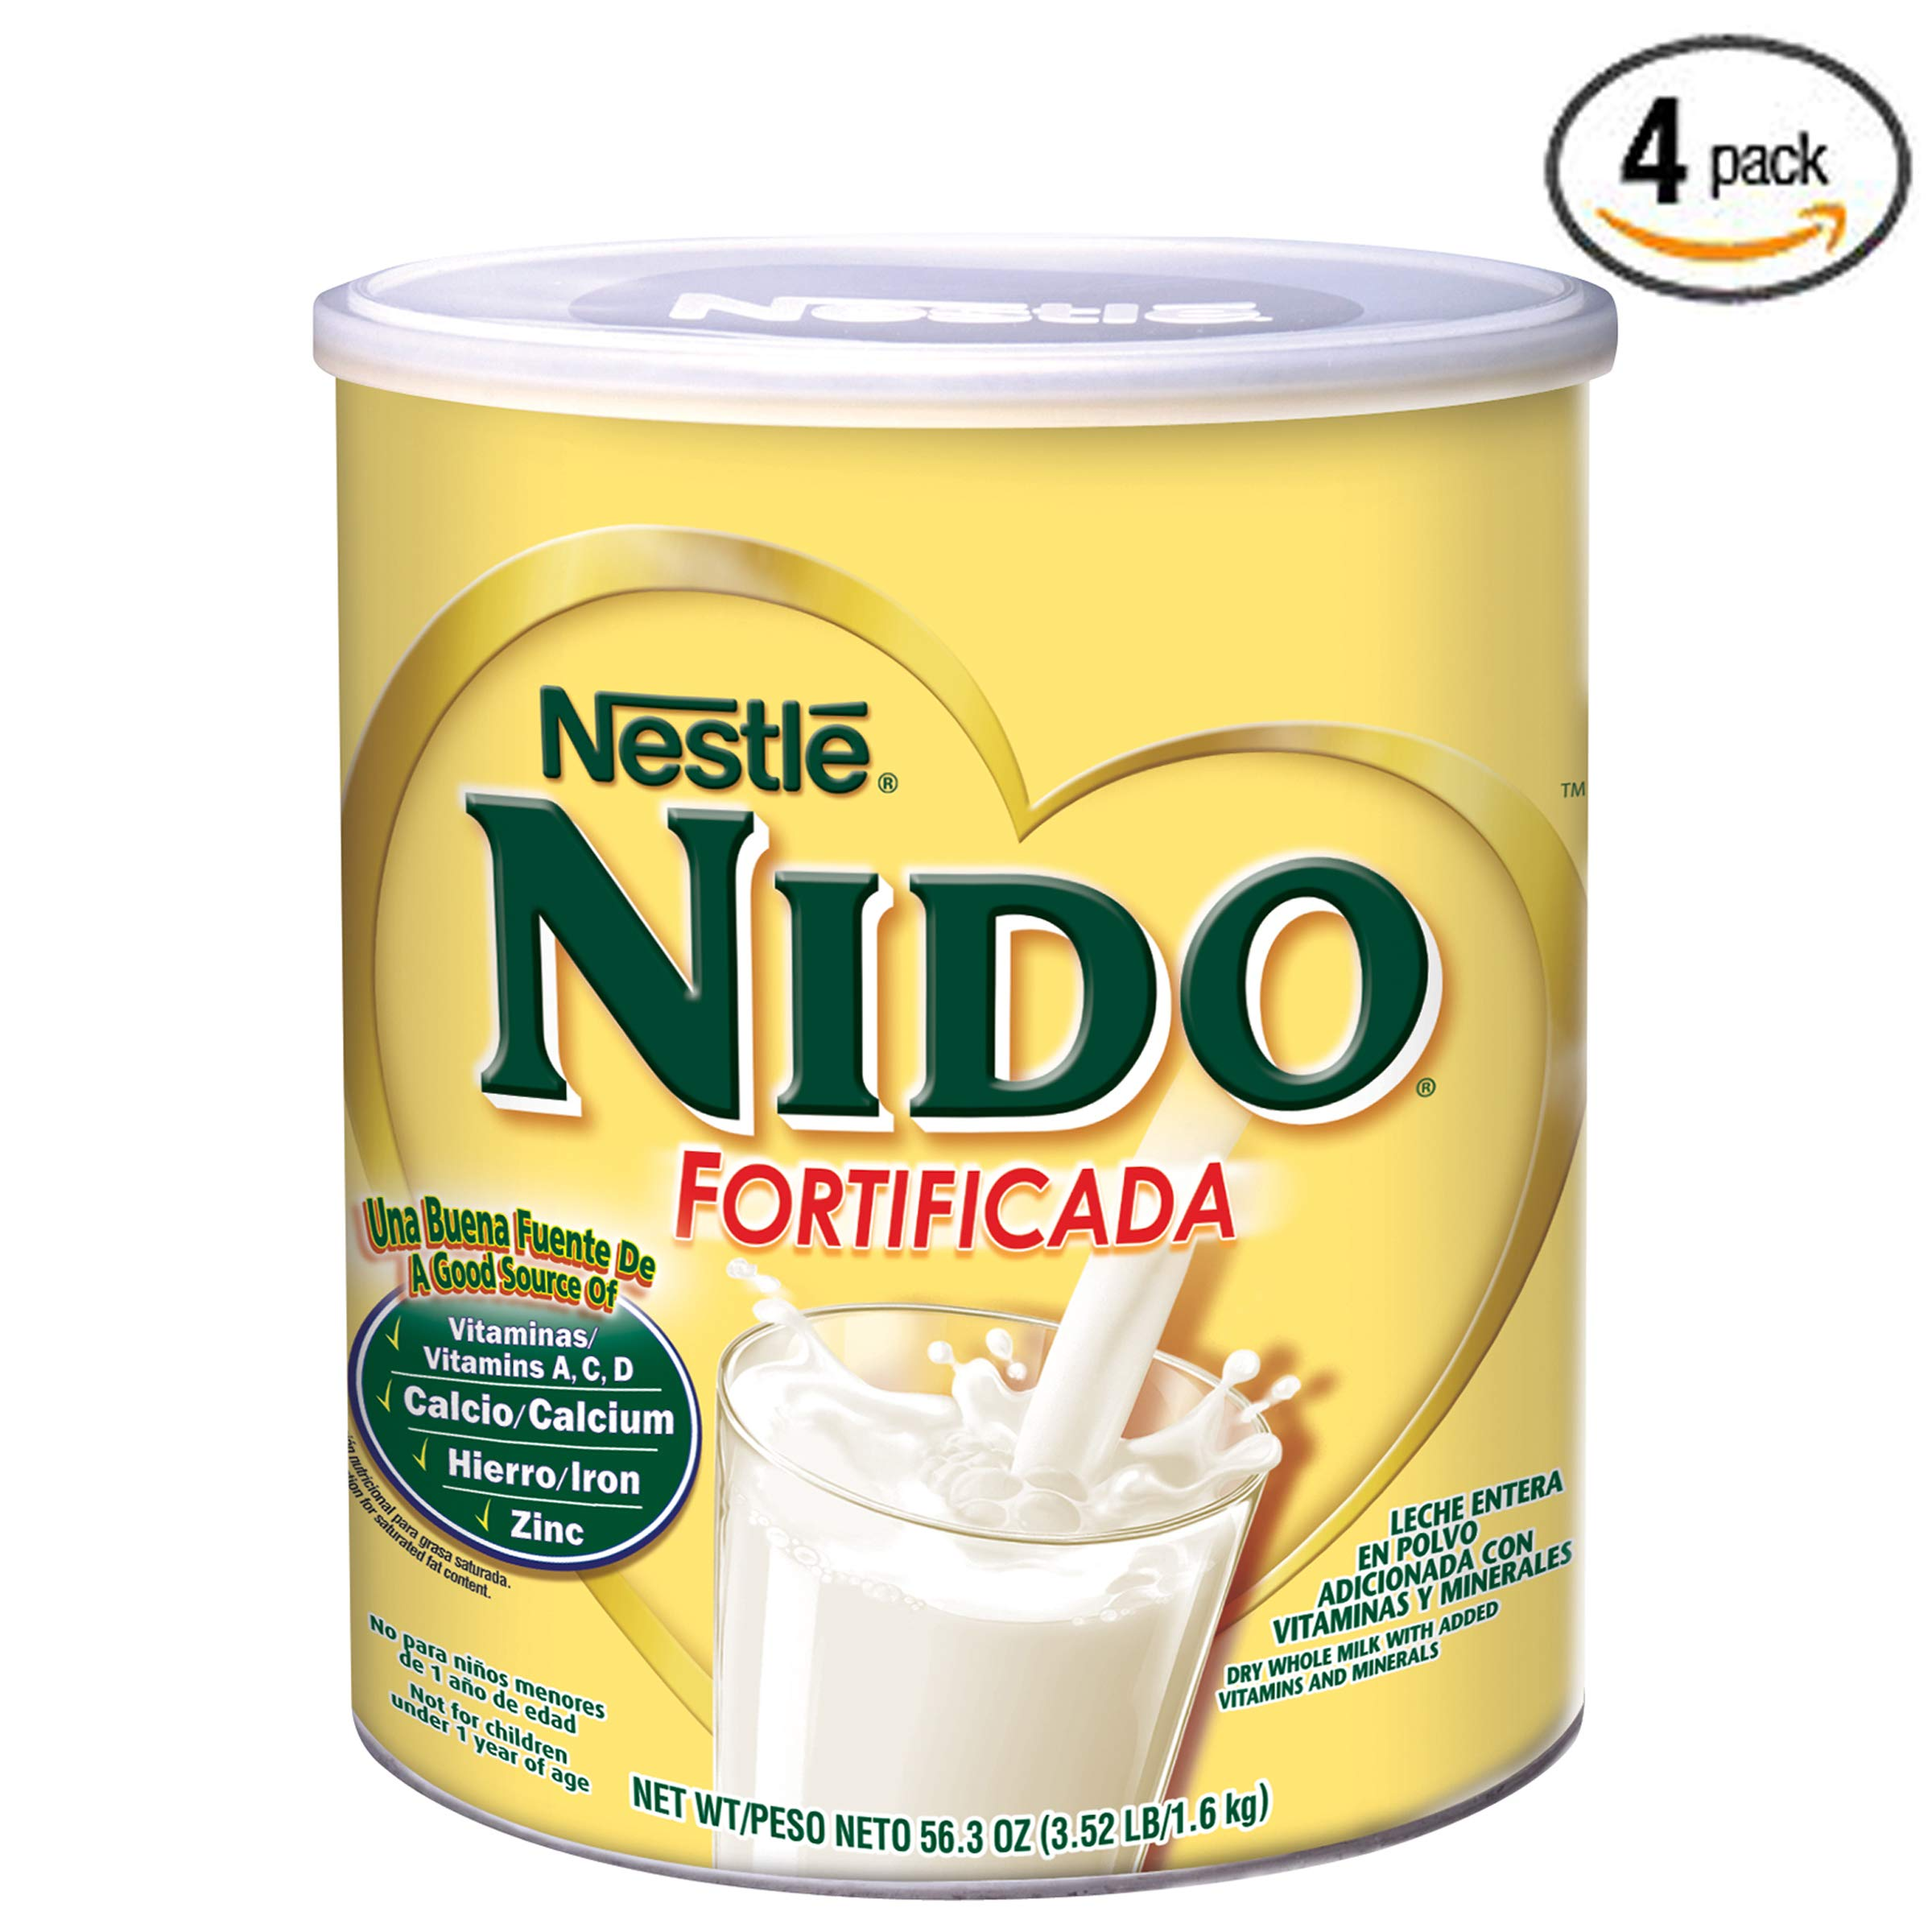 NIDO Fortificada Dry Milk 56.3 oz. Canister, Pack of 4 by Nido (Image #1)